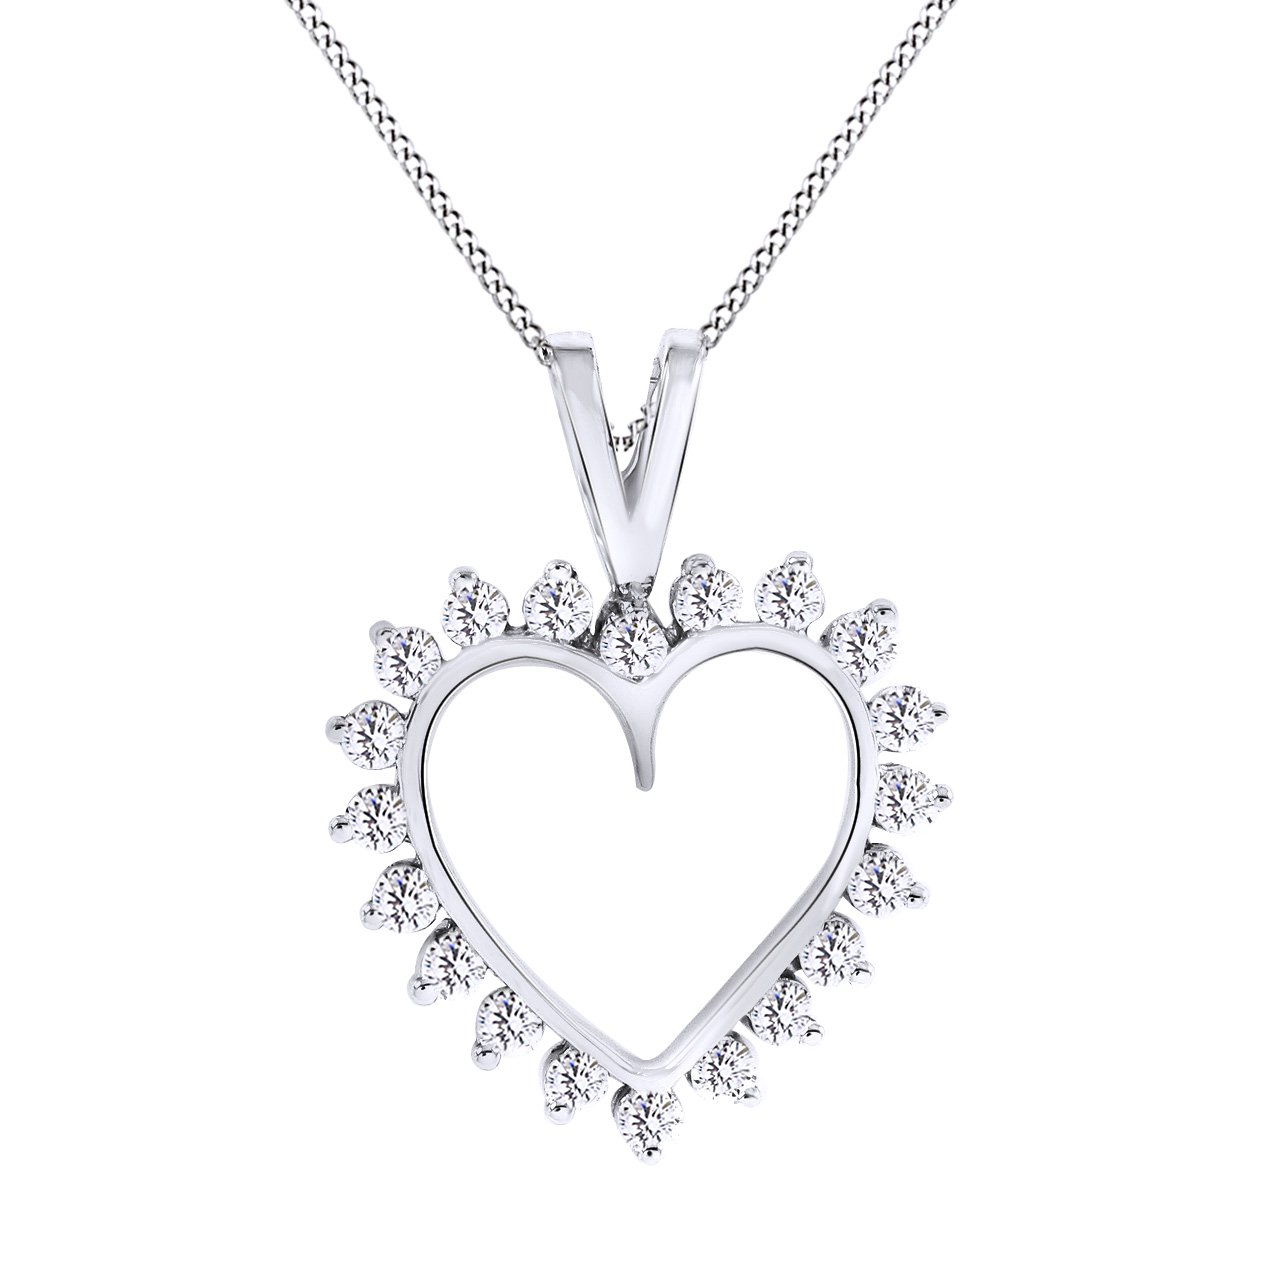 2.15 Cttw AFFY Round Cut Cubic Zirconia Heart Pendant 14k White Gold Over Sterling Silver